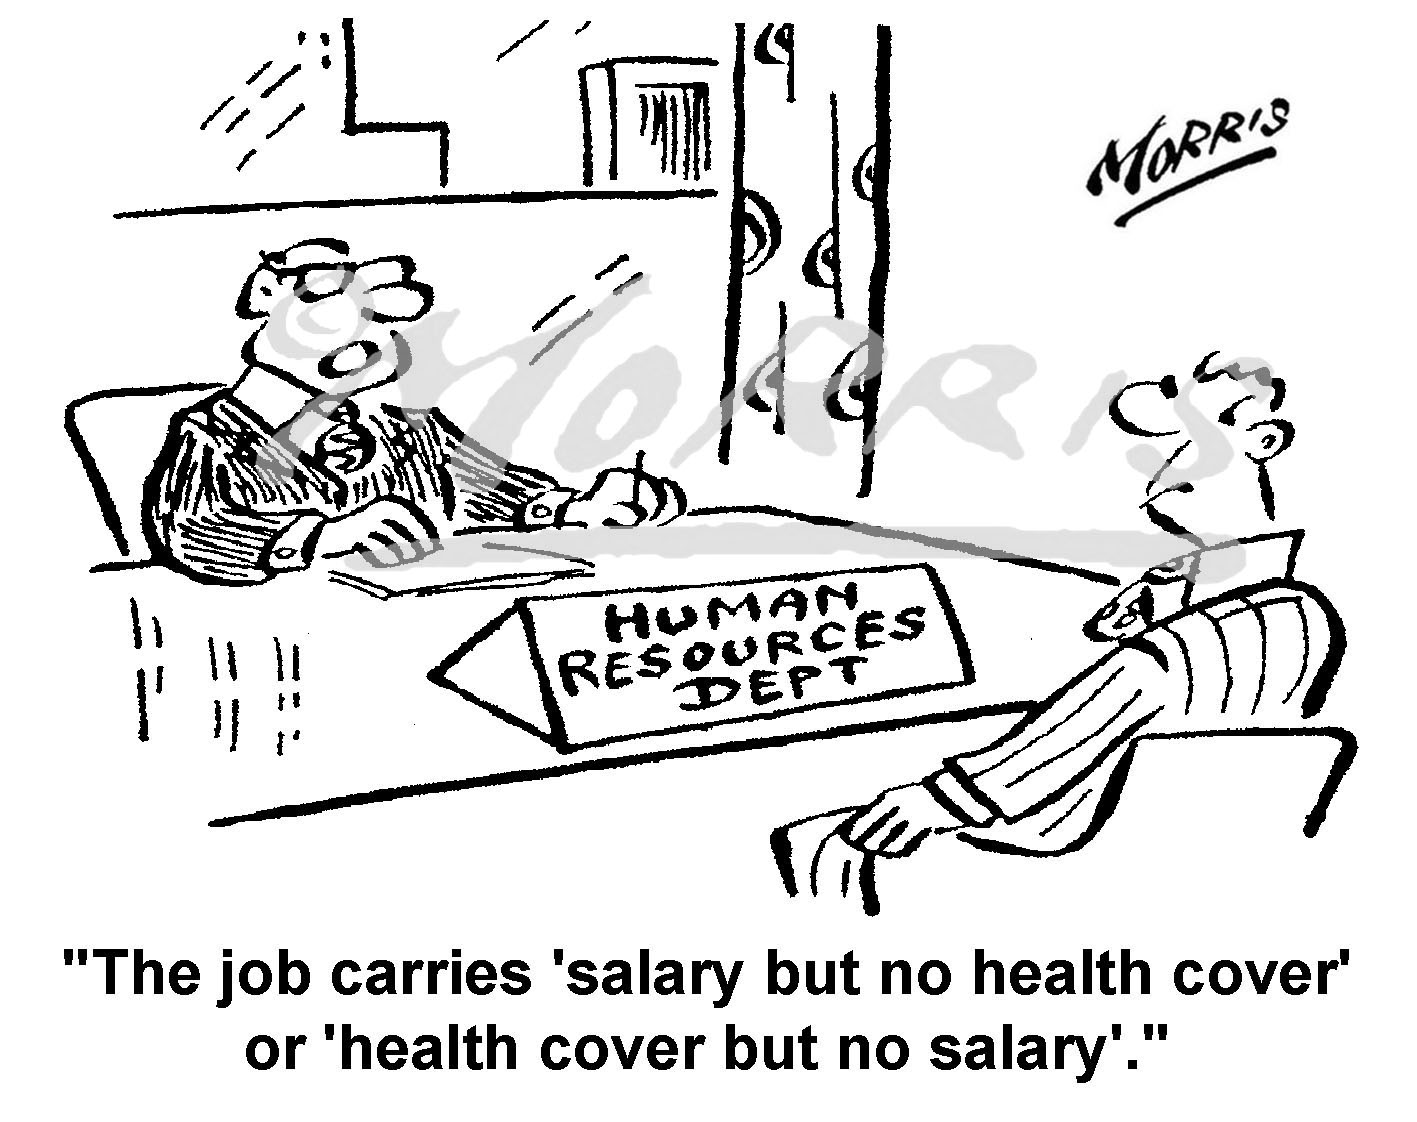 Human Resource business cartoon – Ref: 5191bw